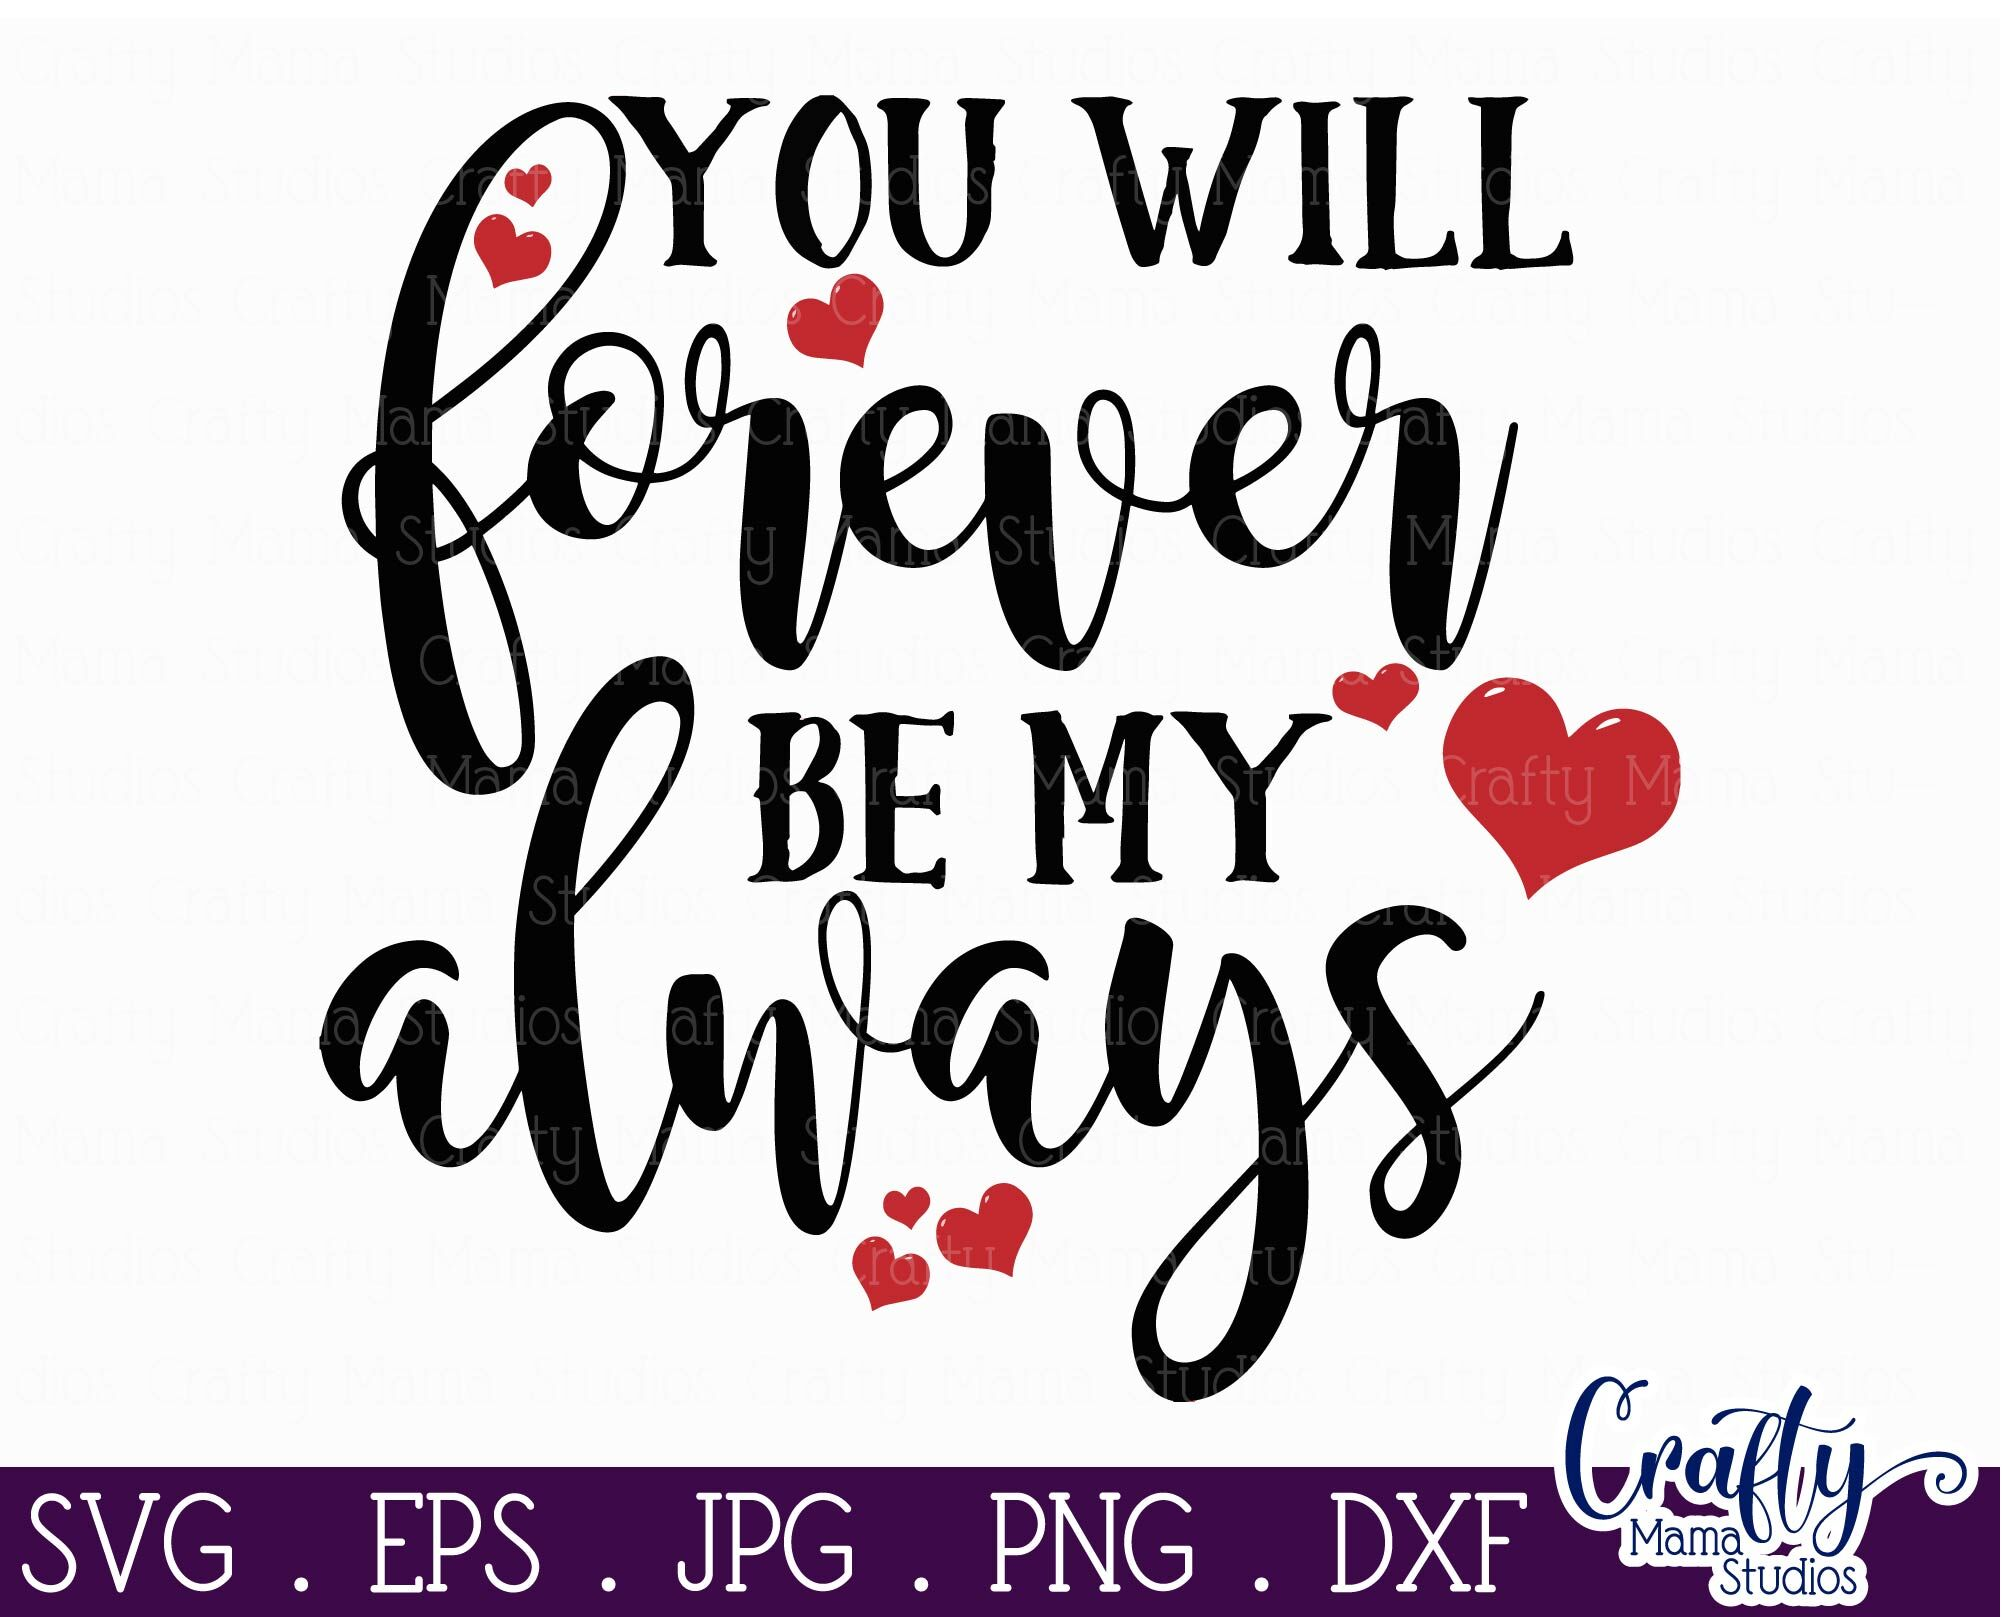 Love Svg - You Will Forever Be My Always By Crafty Mama